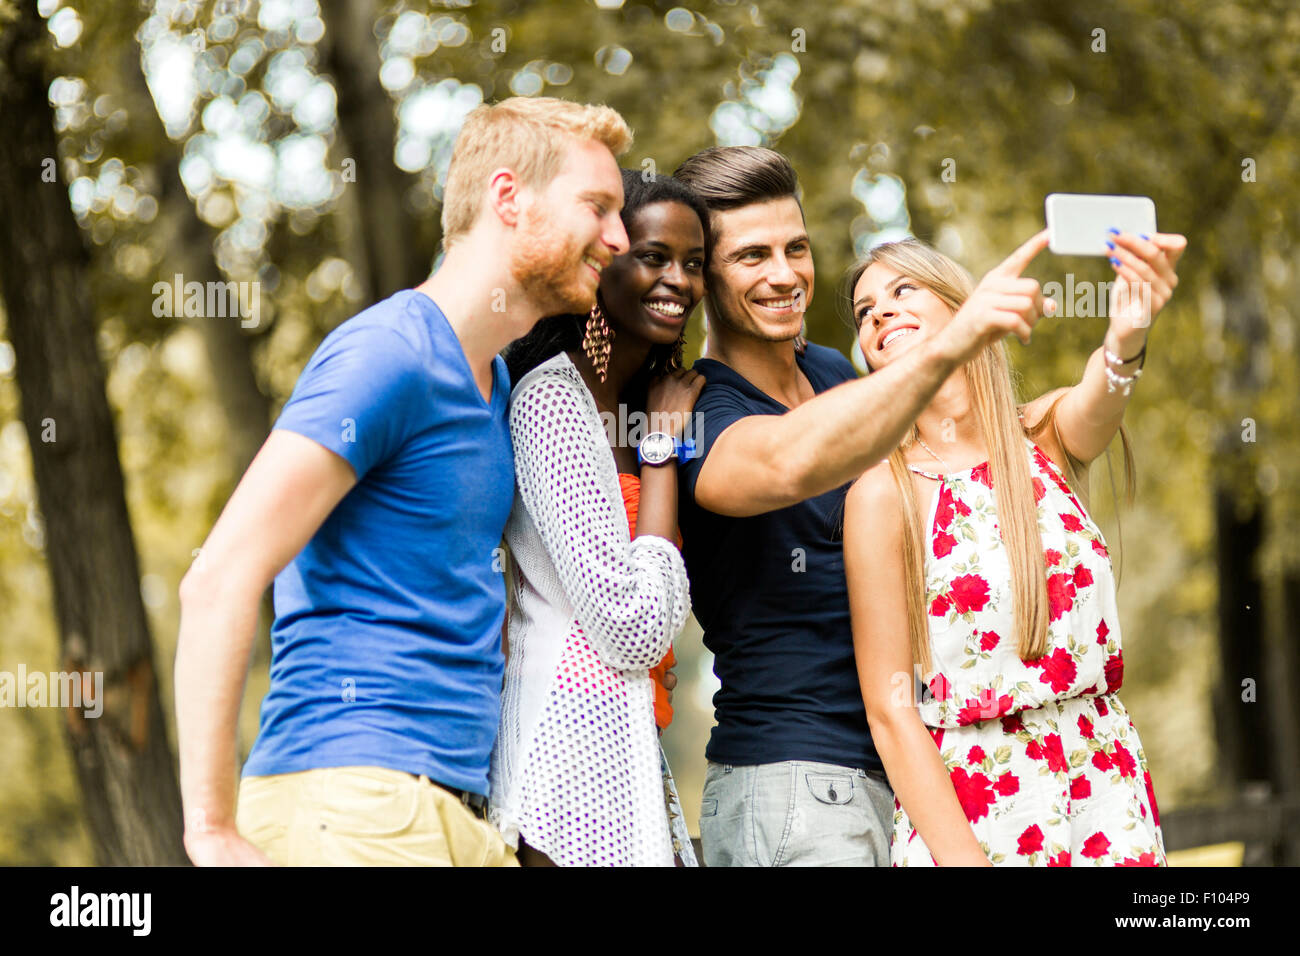 Group of young people and couples taking selfies in nature and smiling - Stock Image